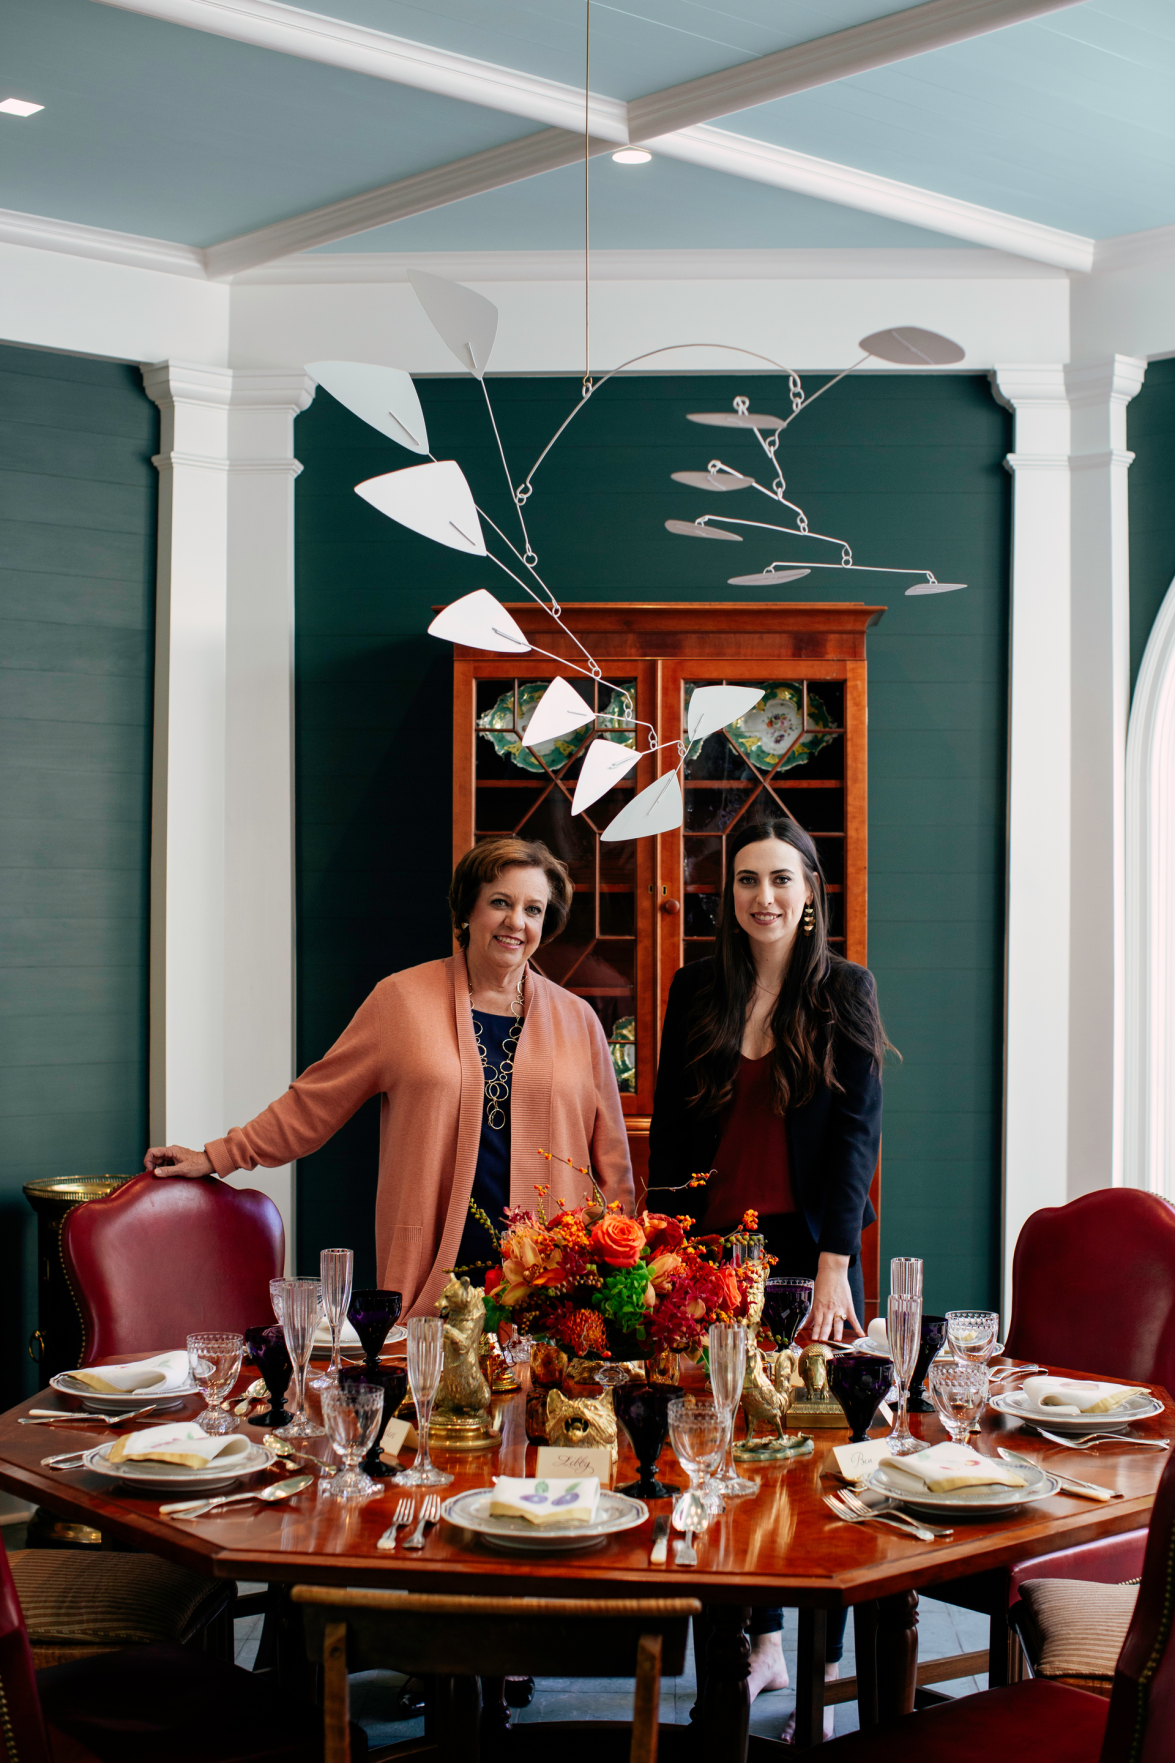 At the Table With Nfocus: Libby Page and Dana Windrow